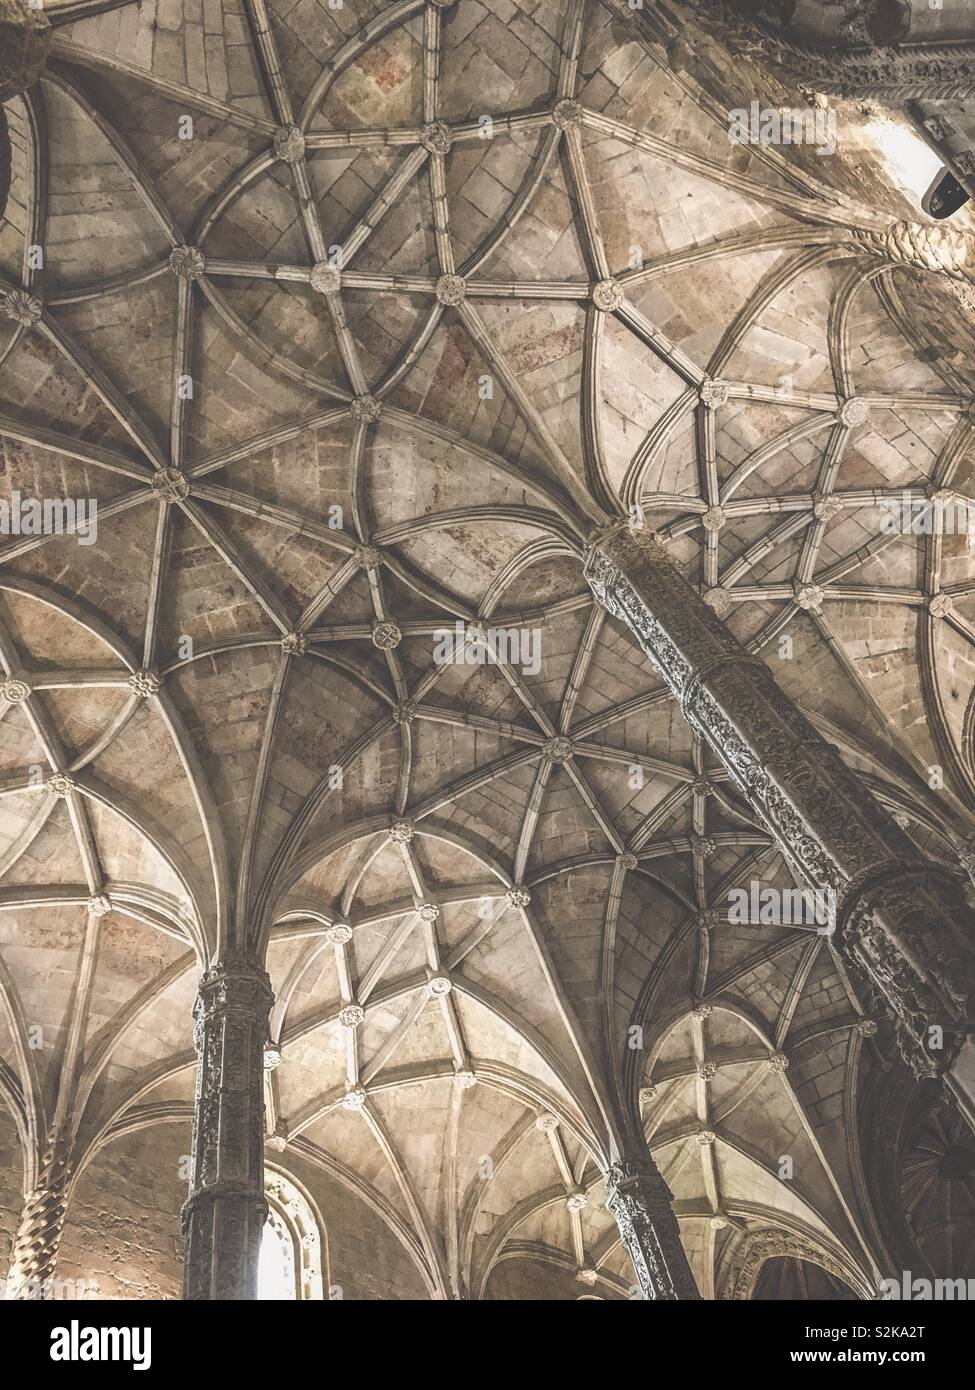 The ancient vaulted ceiling of a monastery church. - Stock Image